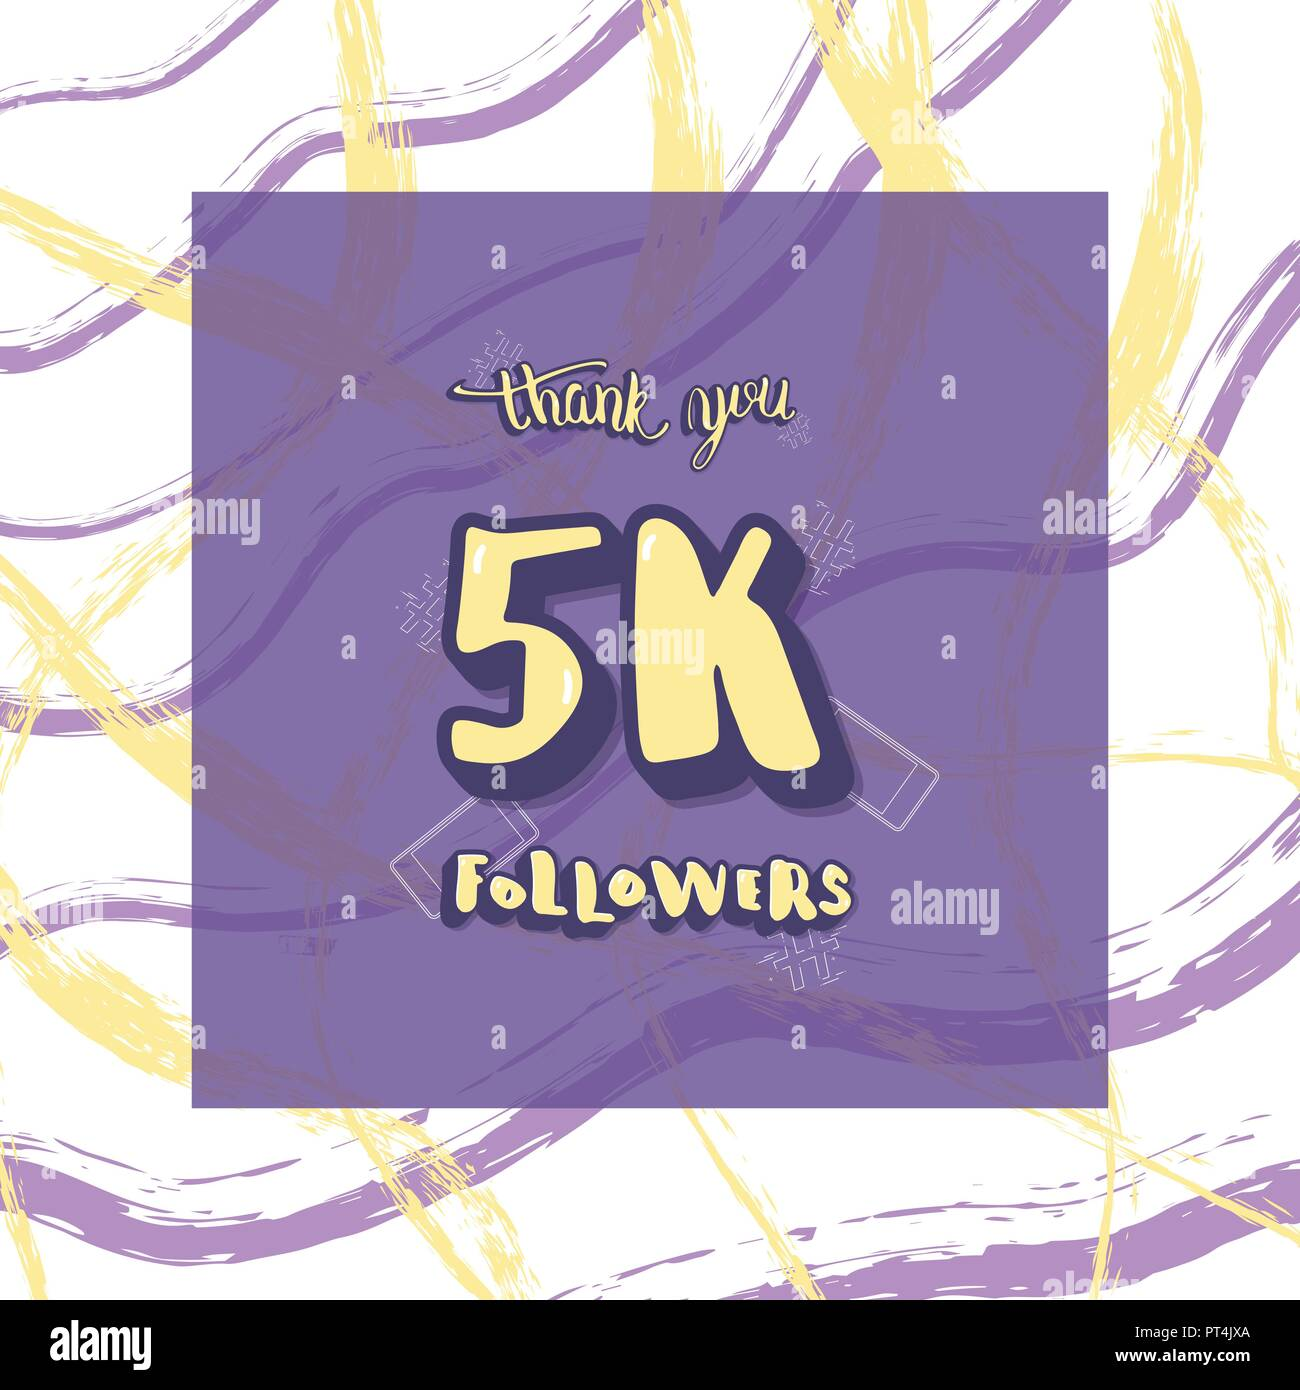 5k followers thank you social media template banner for internet